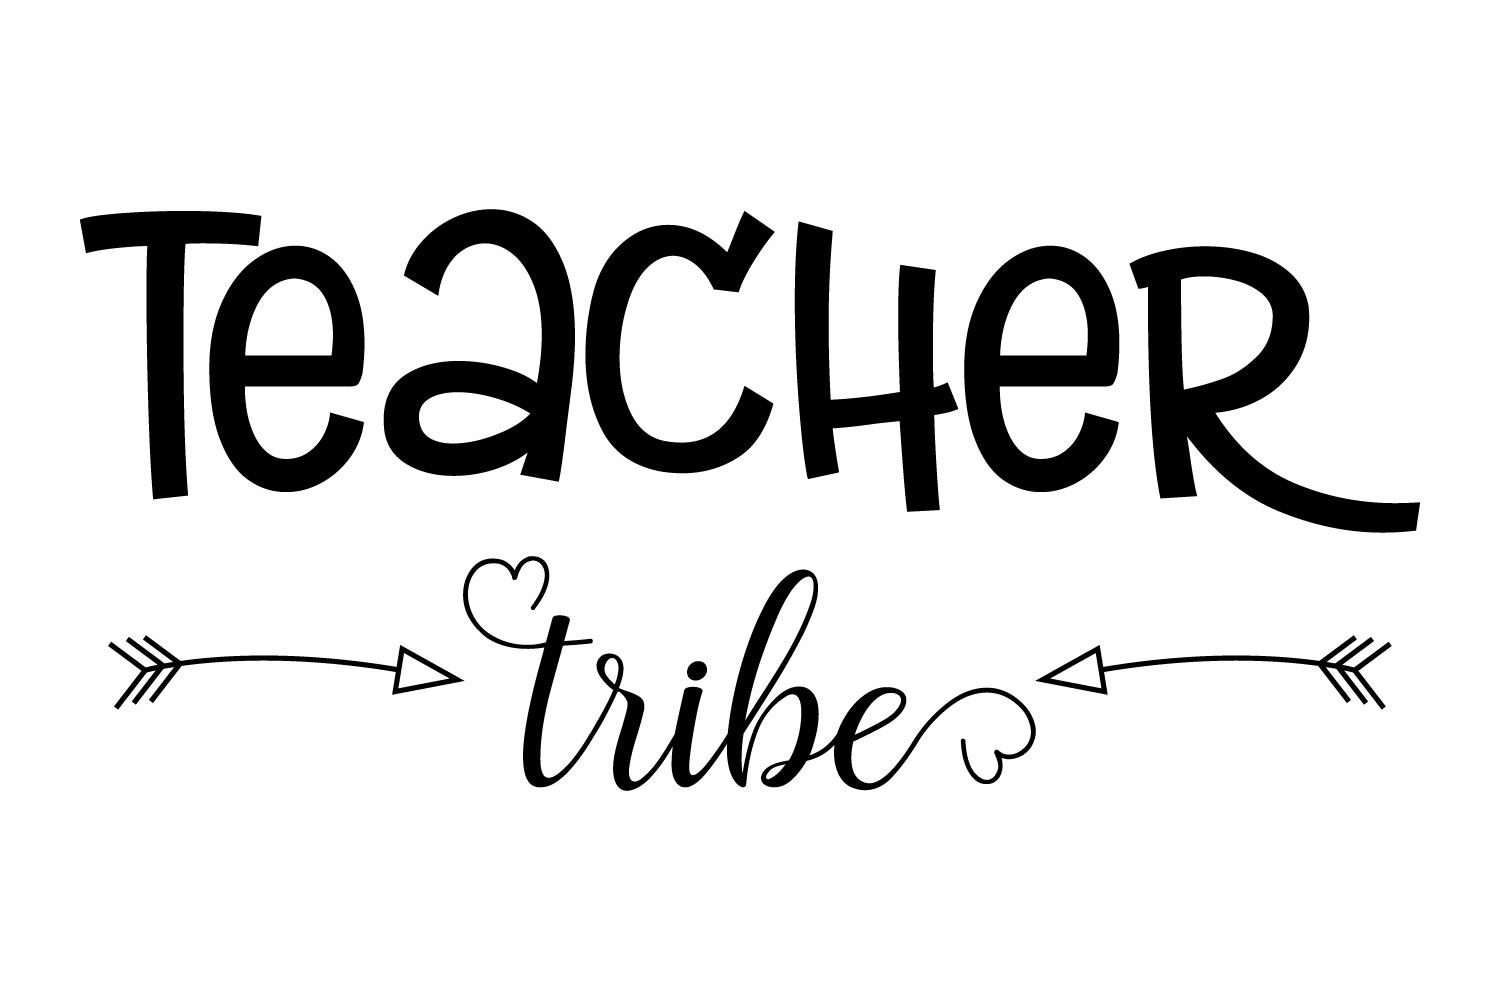 Download Free Teacher Tribe Graphic By Goran Stojanovic Creative Fabrica for Cricut Explore, Silhouette and other cutting machines.